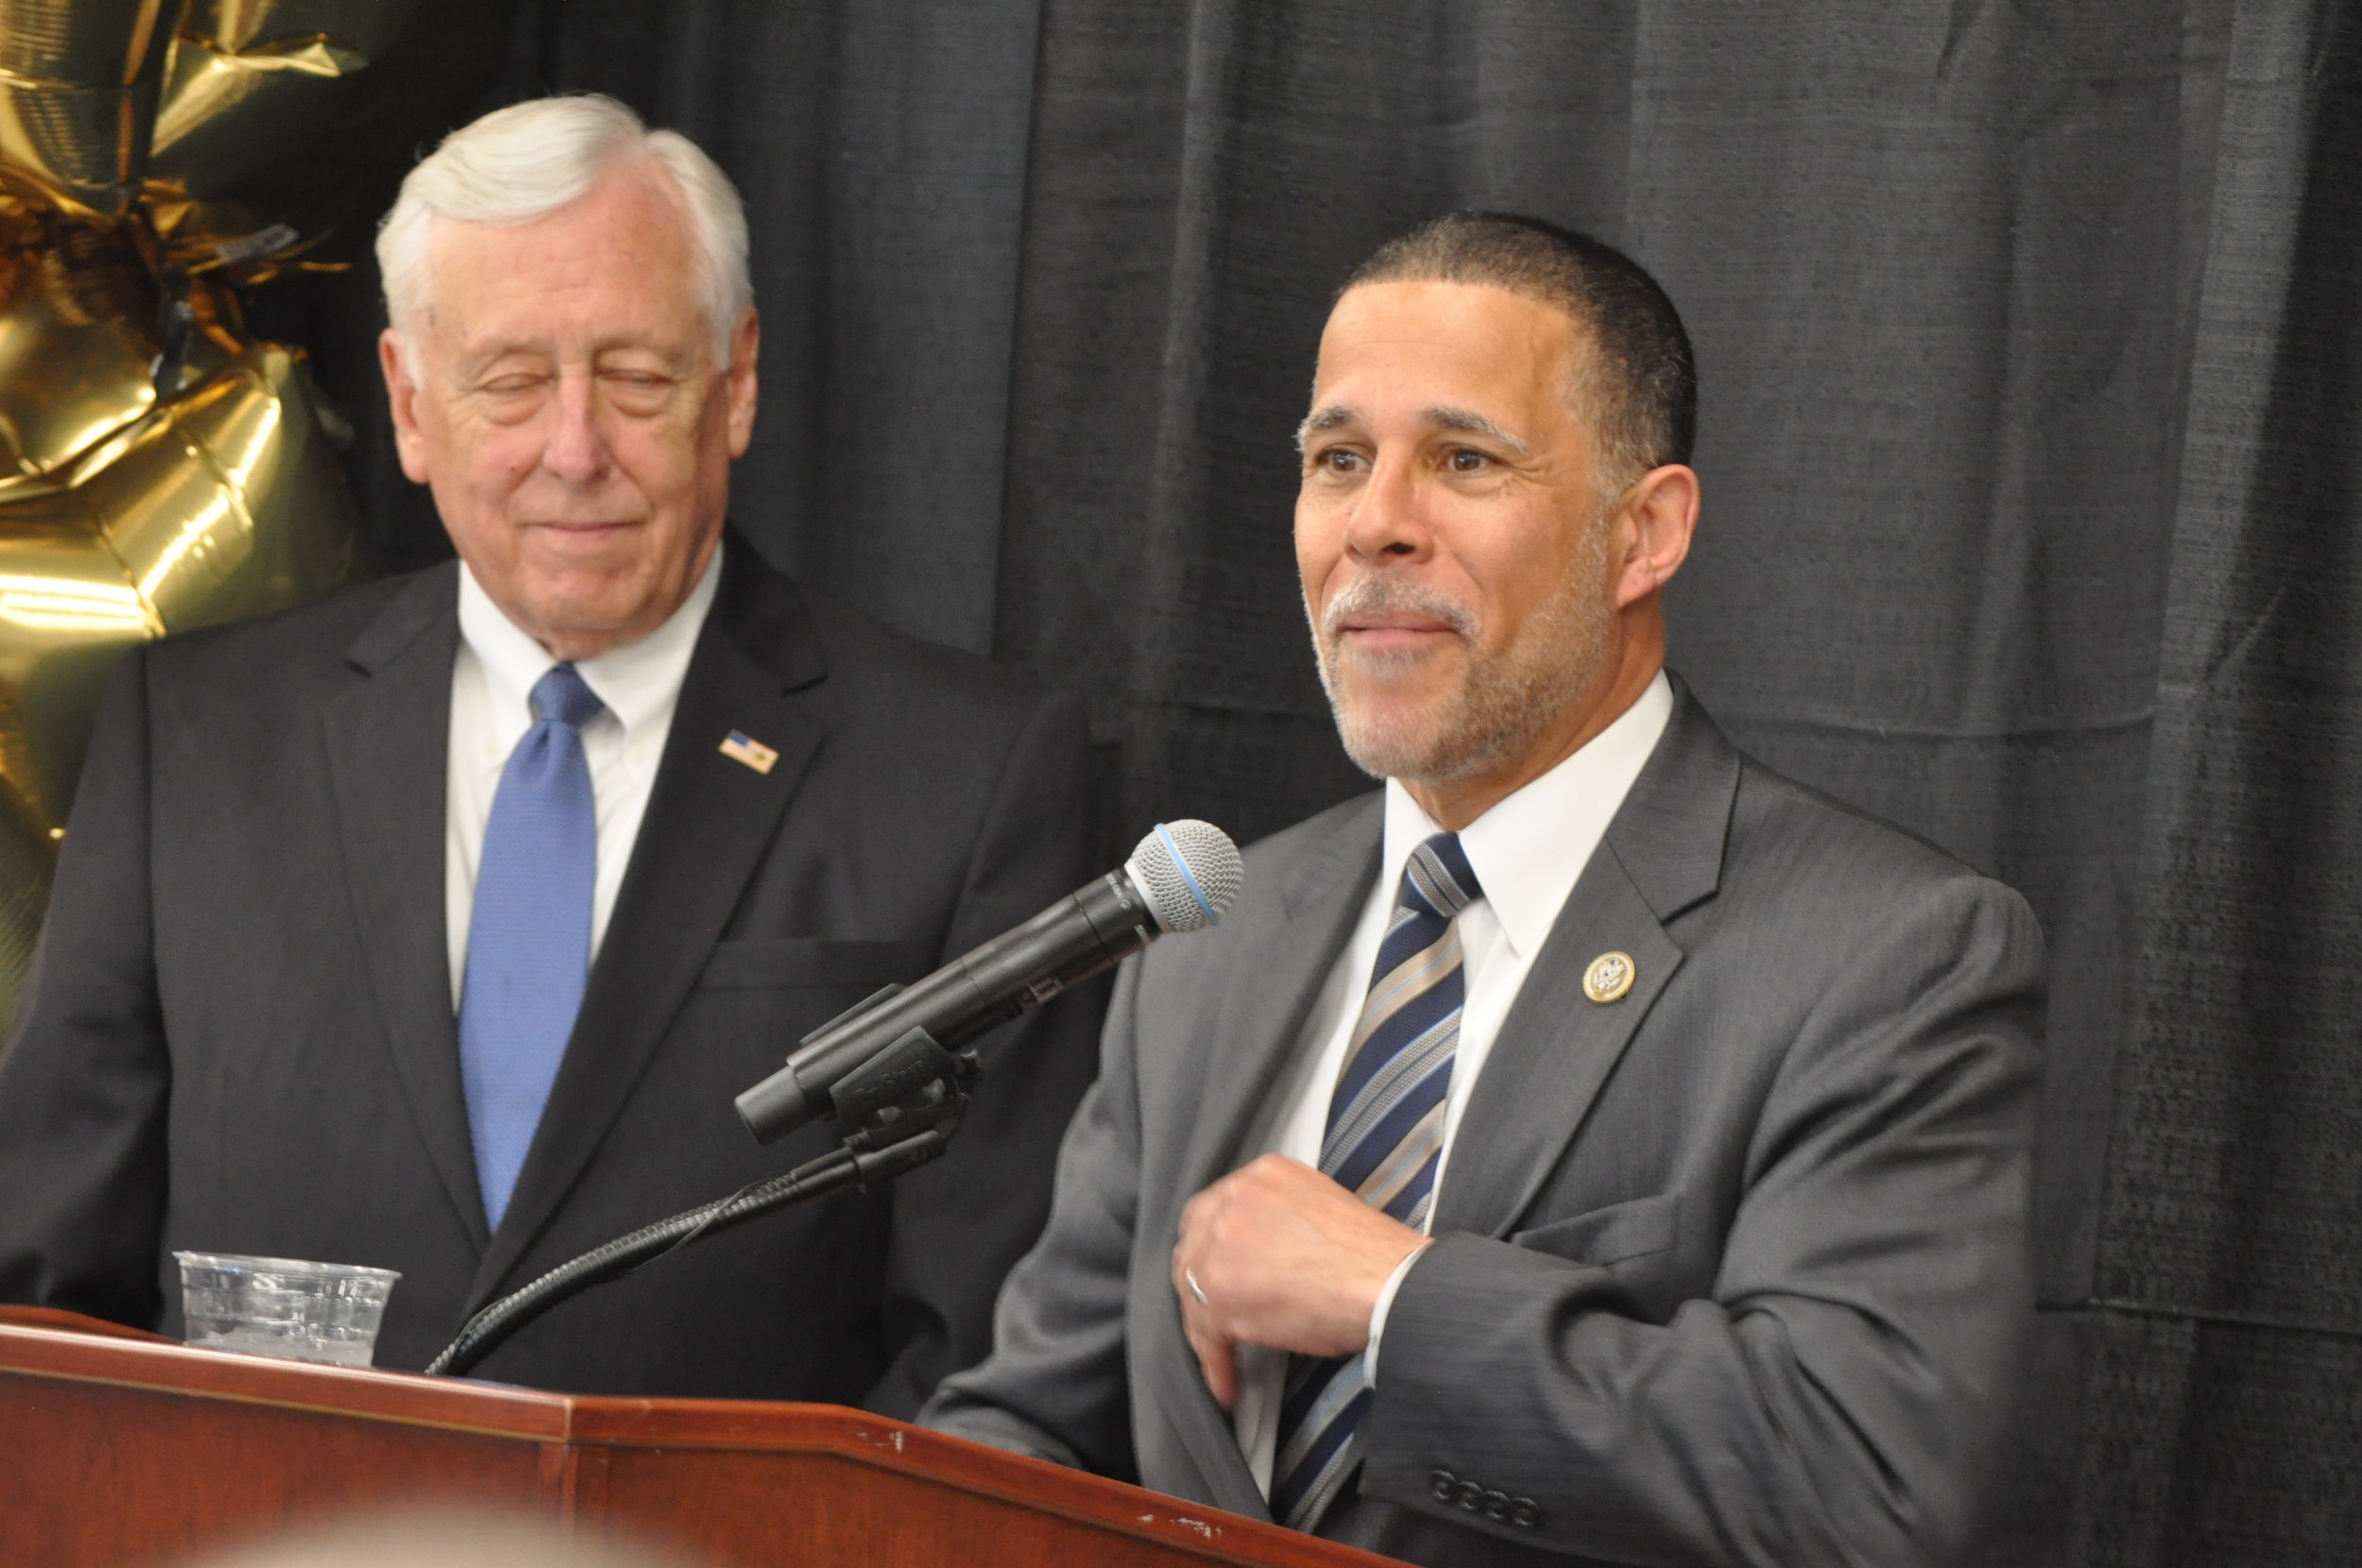 U.S. Congressmen Steny Hoyer (left) and Anthony Brown. PHOTO: RAOUL DENNIS // PRINCE GEORGE'S SUITE MAGAZINE & MEDIA